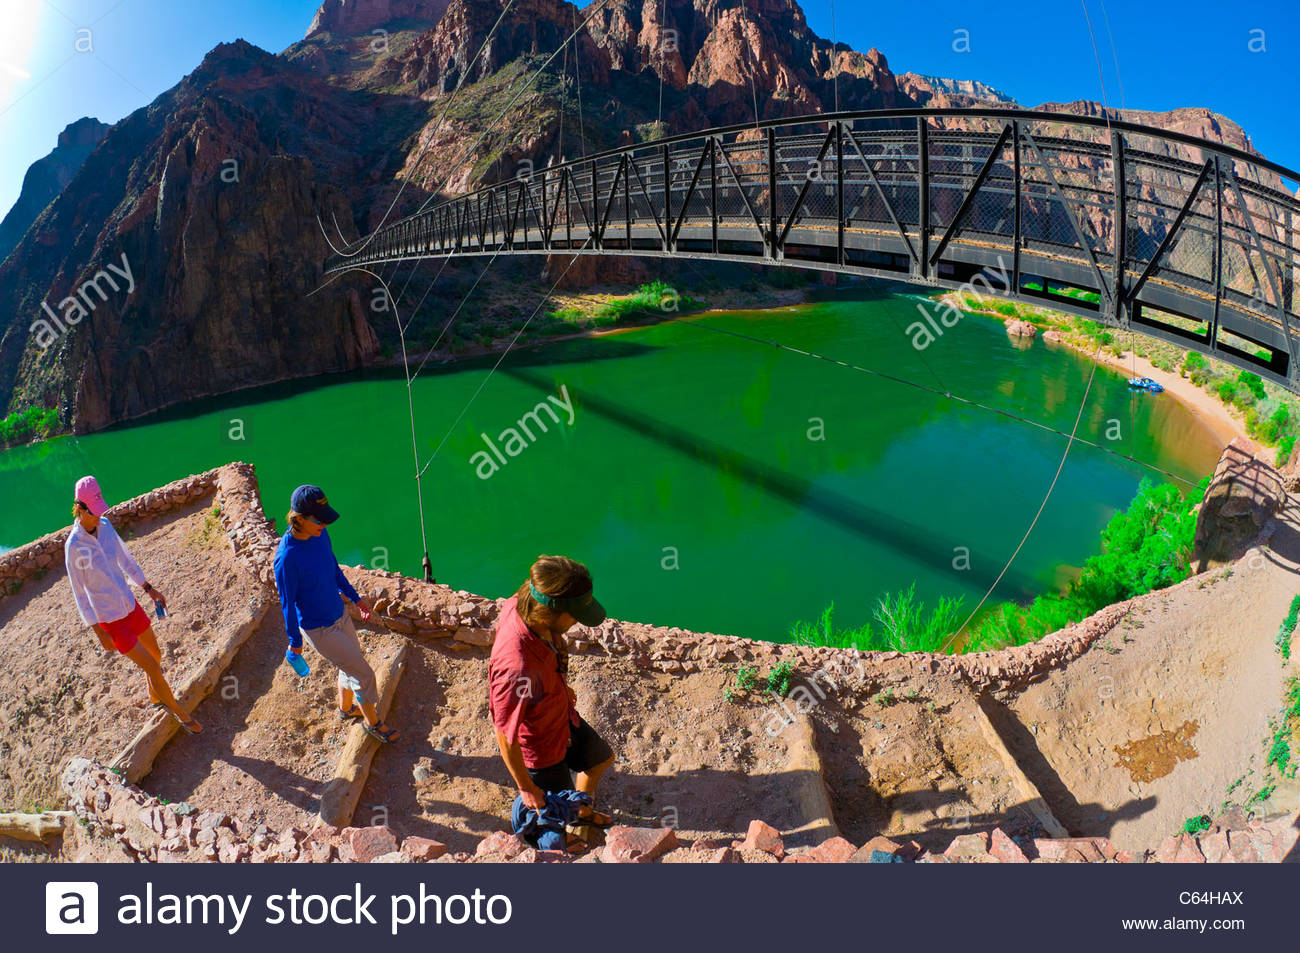 Kaibab Suspension Bridge, Whitewater rafting trip on the Colorado River in Grand Canyon, Grand Canyon National Park, Stock Photo